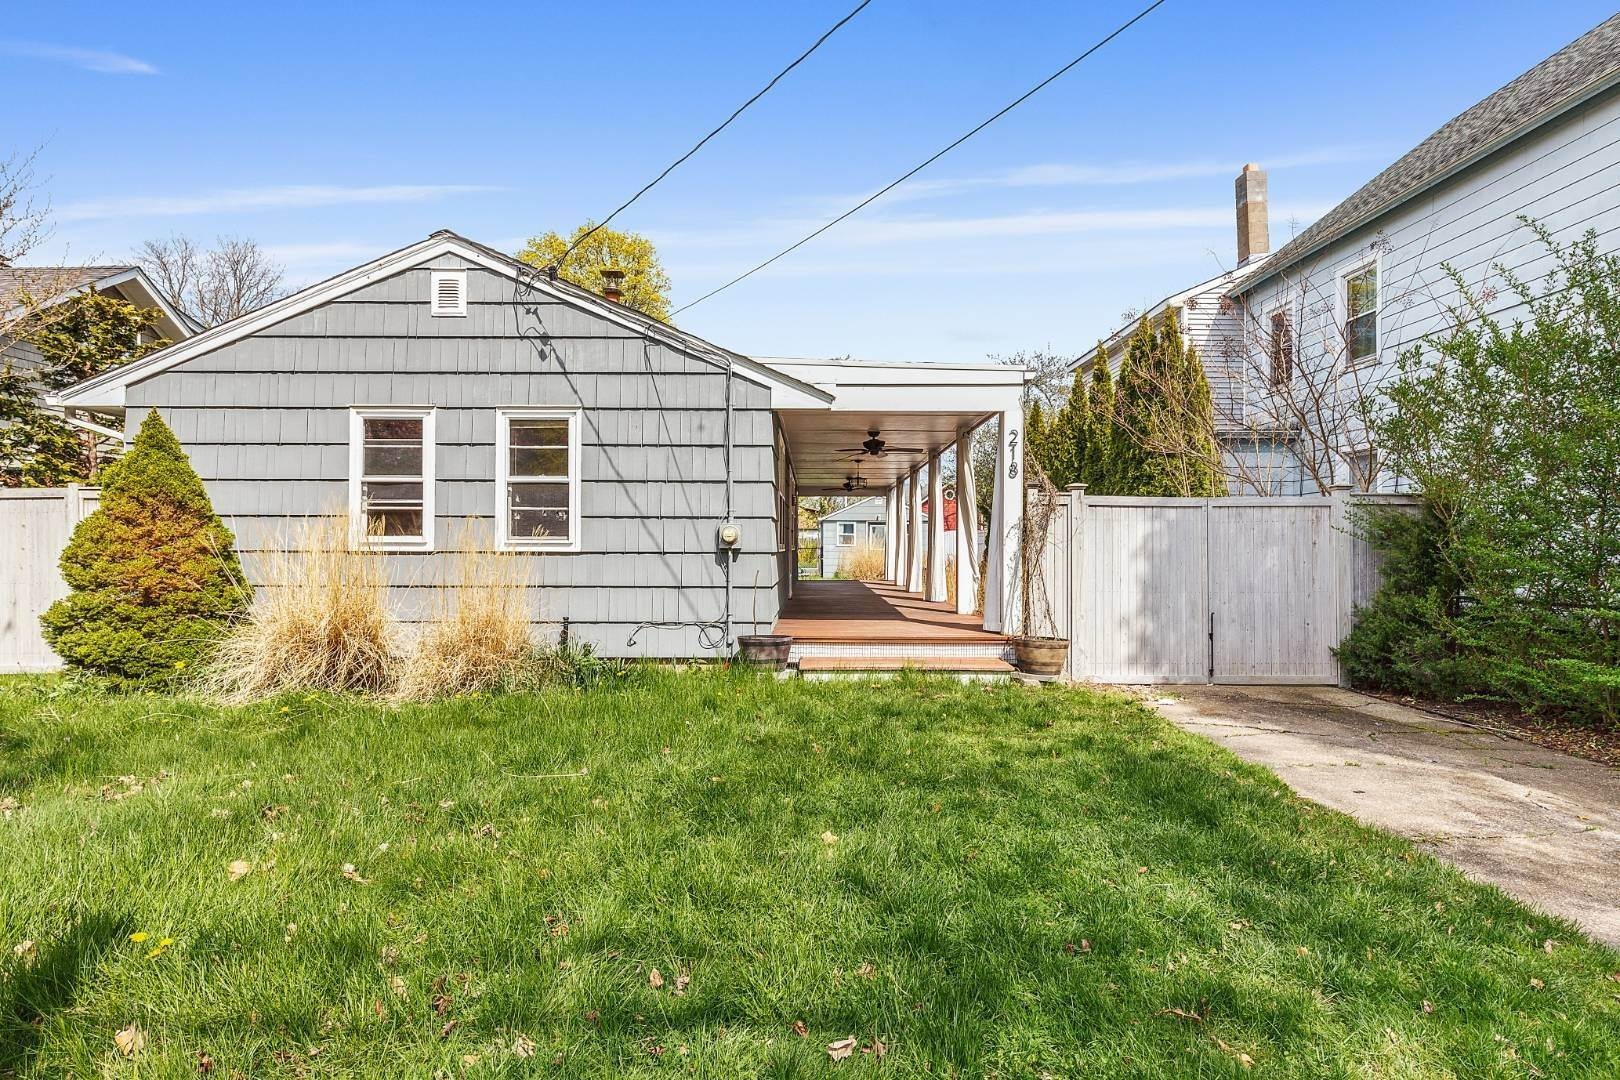 Single Family Home for Sale at Beach Cottage In The Heart Of Greenport Village With Pool! 218 Fifth St, Greenport Village, NY 11944